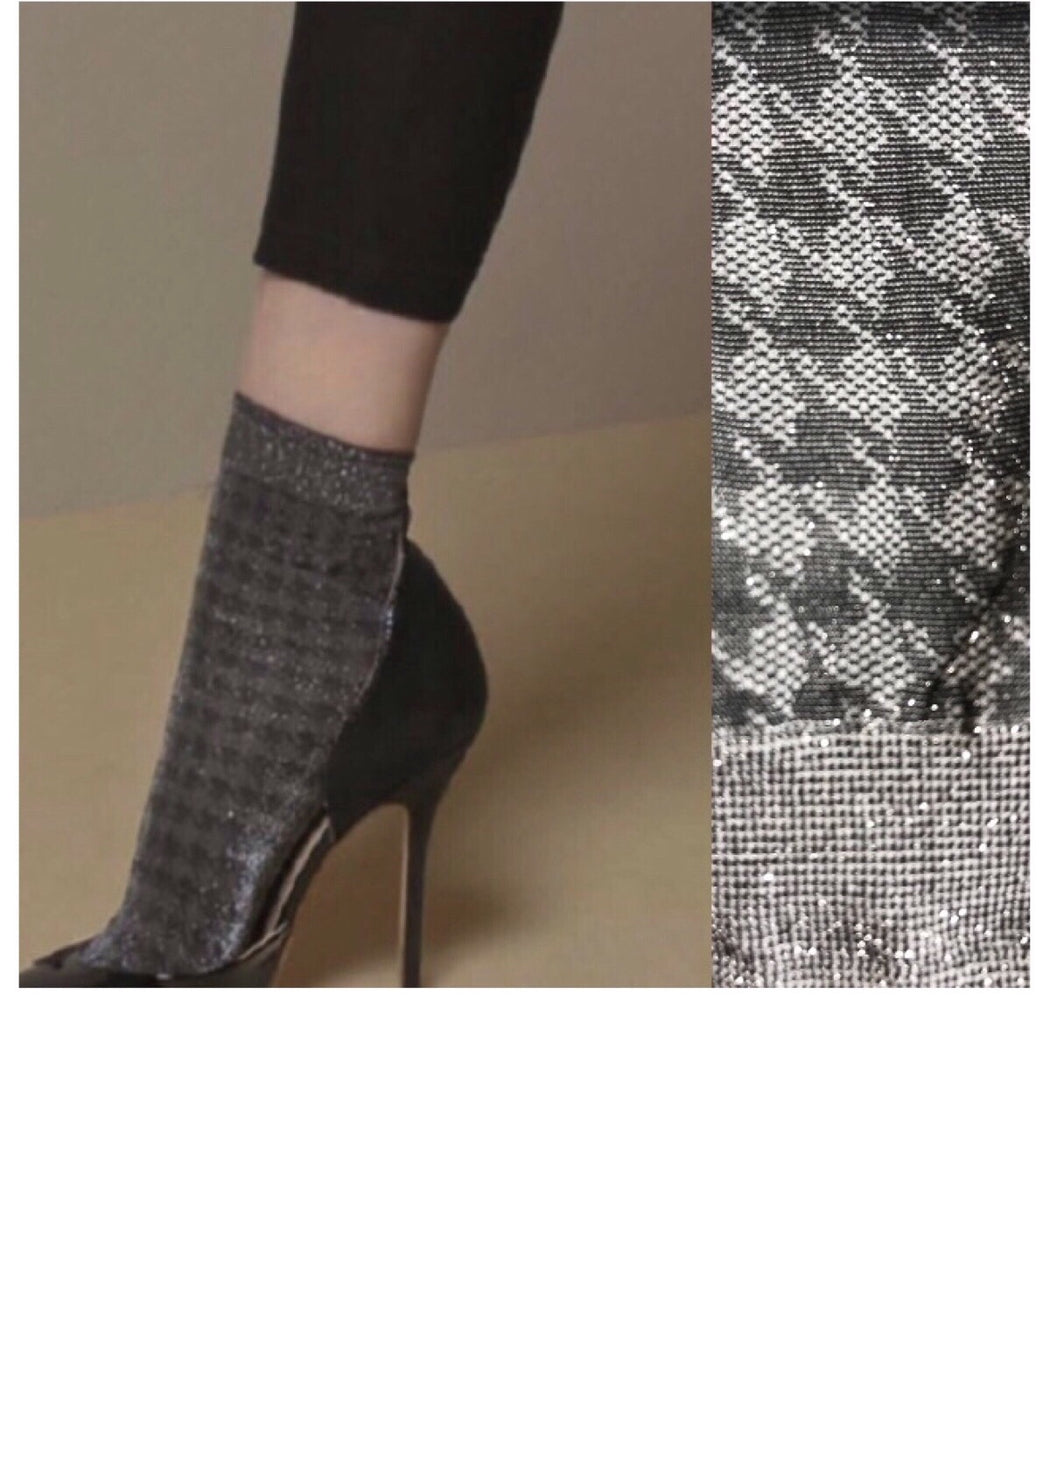 HOUNDSTOOTH GREY SHIMMER SOCKS